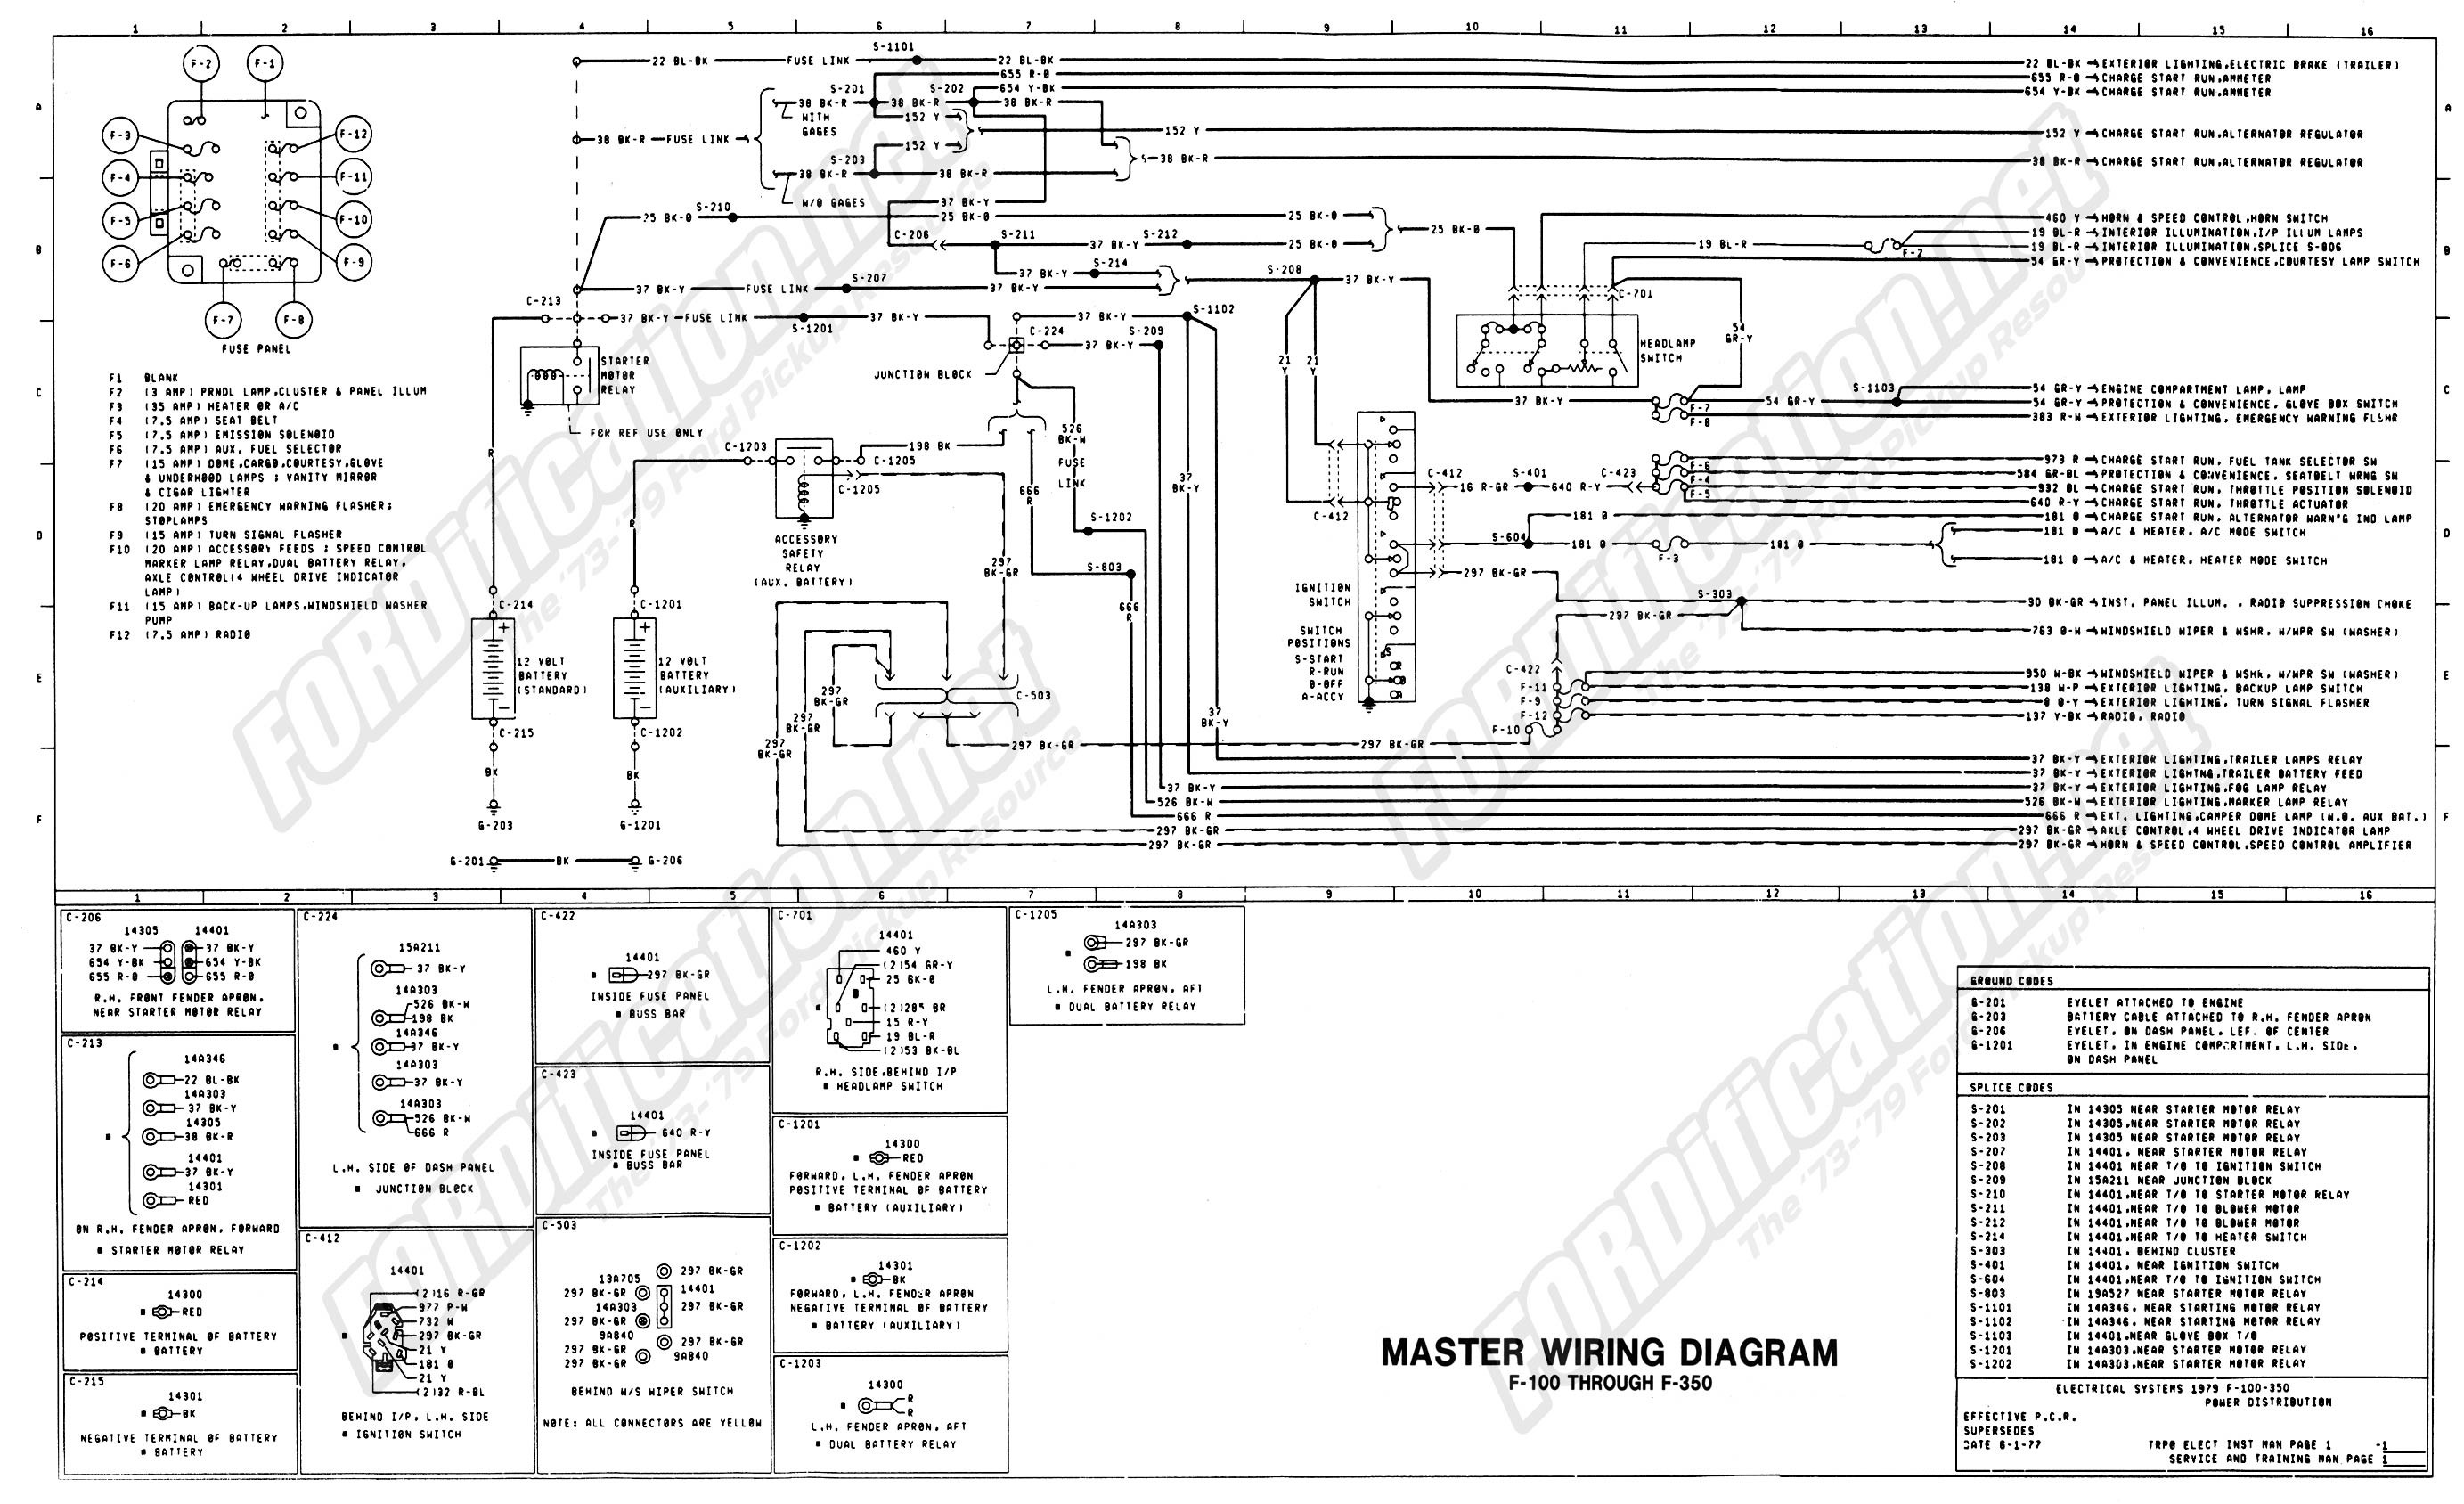 Truck Air System Diagram 79 F150 solenoid Wiring Diagram ford Truck Enthusiasts forums Of Truck Air System Diagram